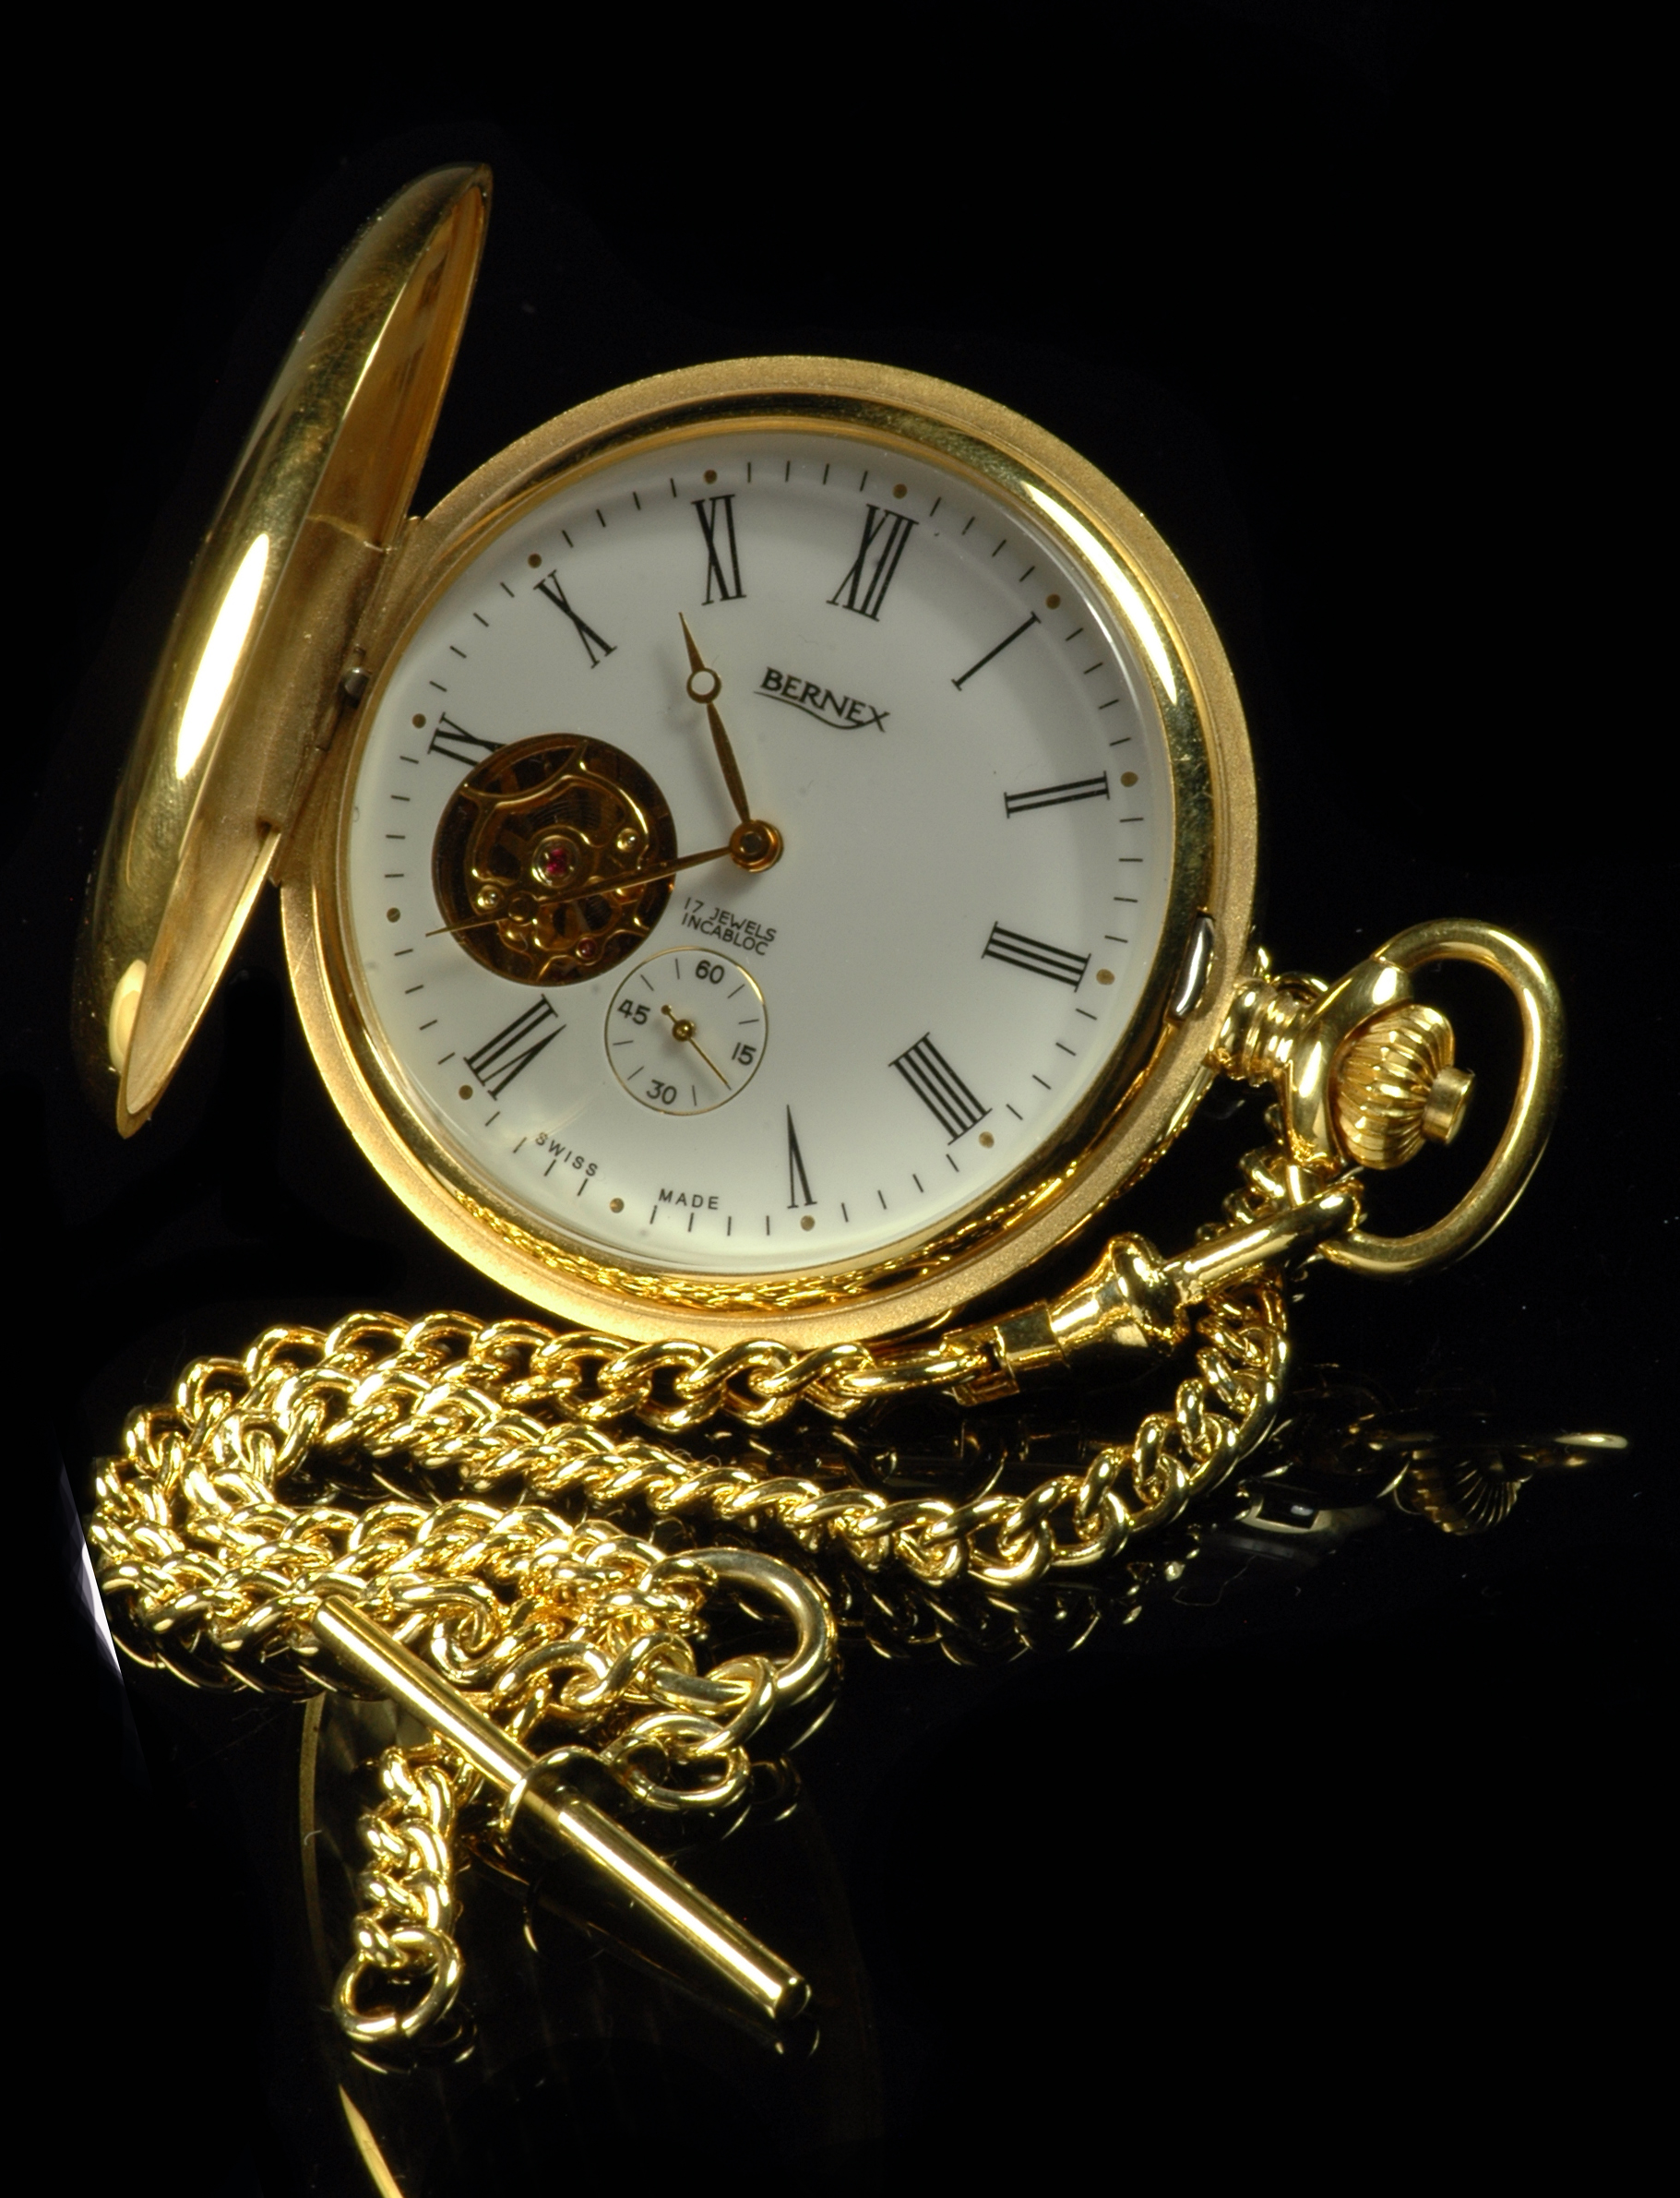 bernexpocketwatch3